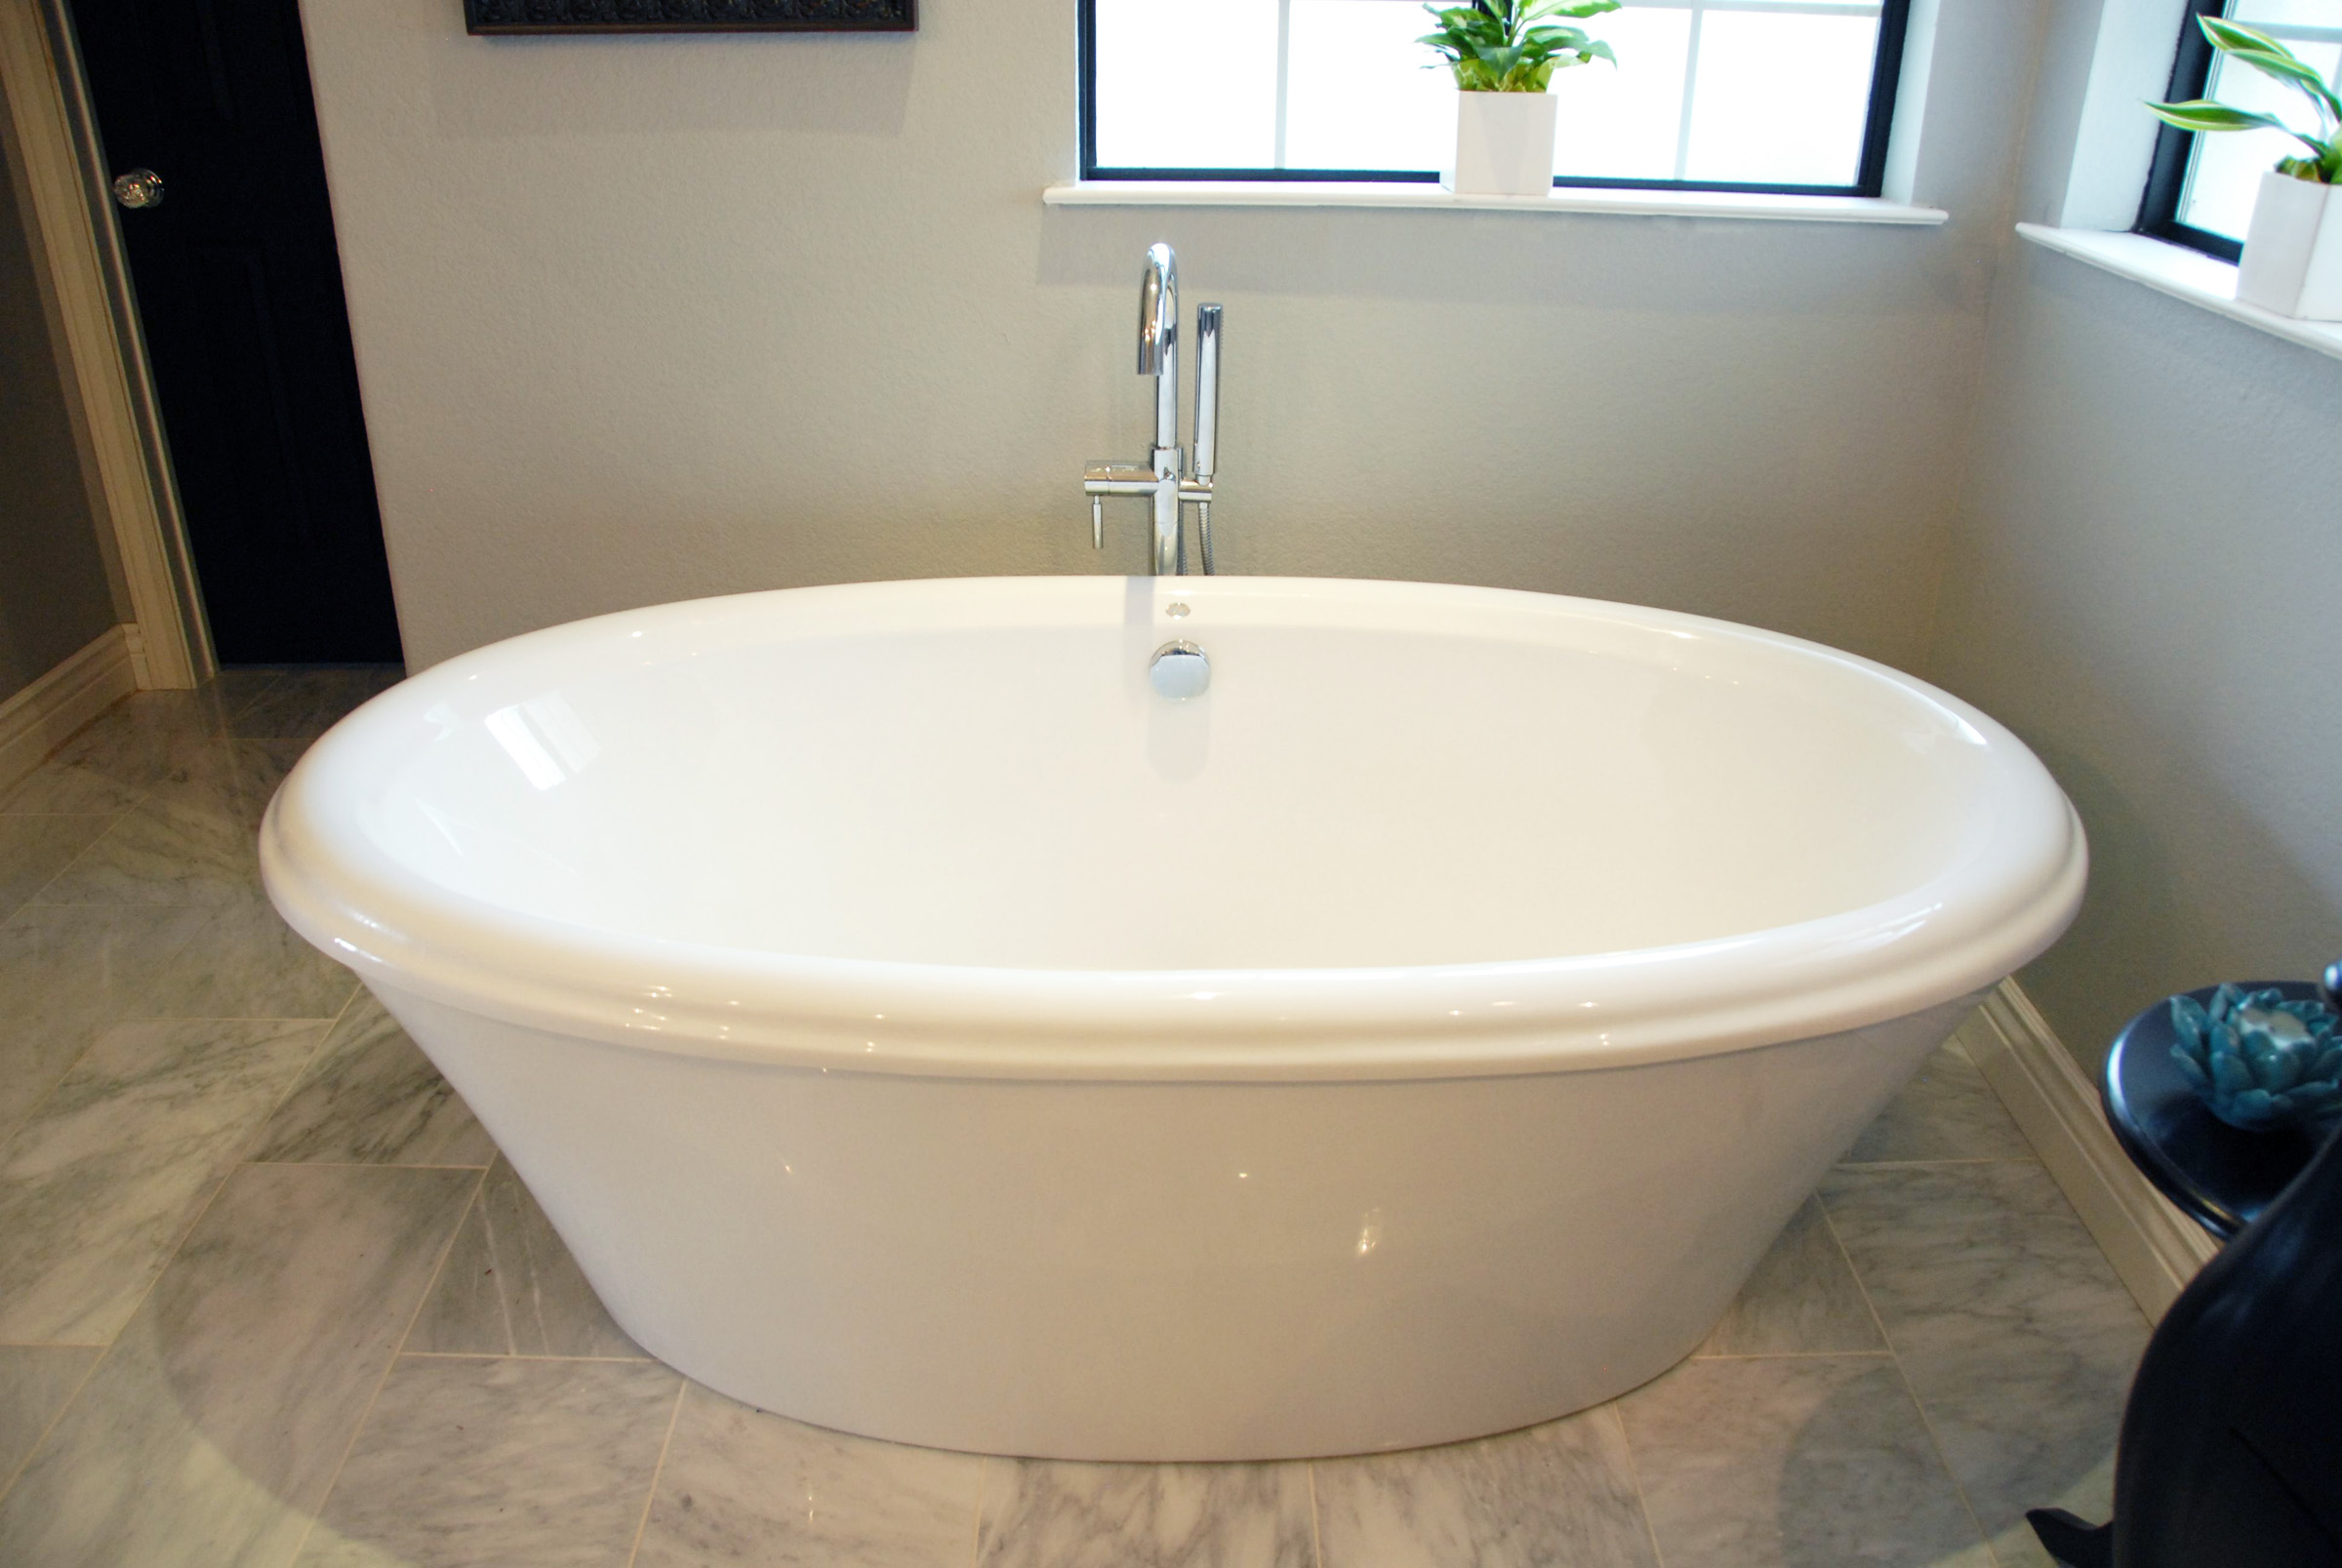 The new tub